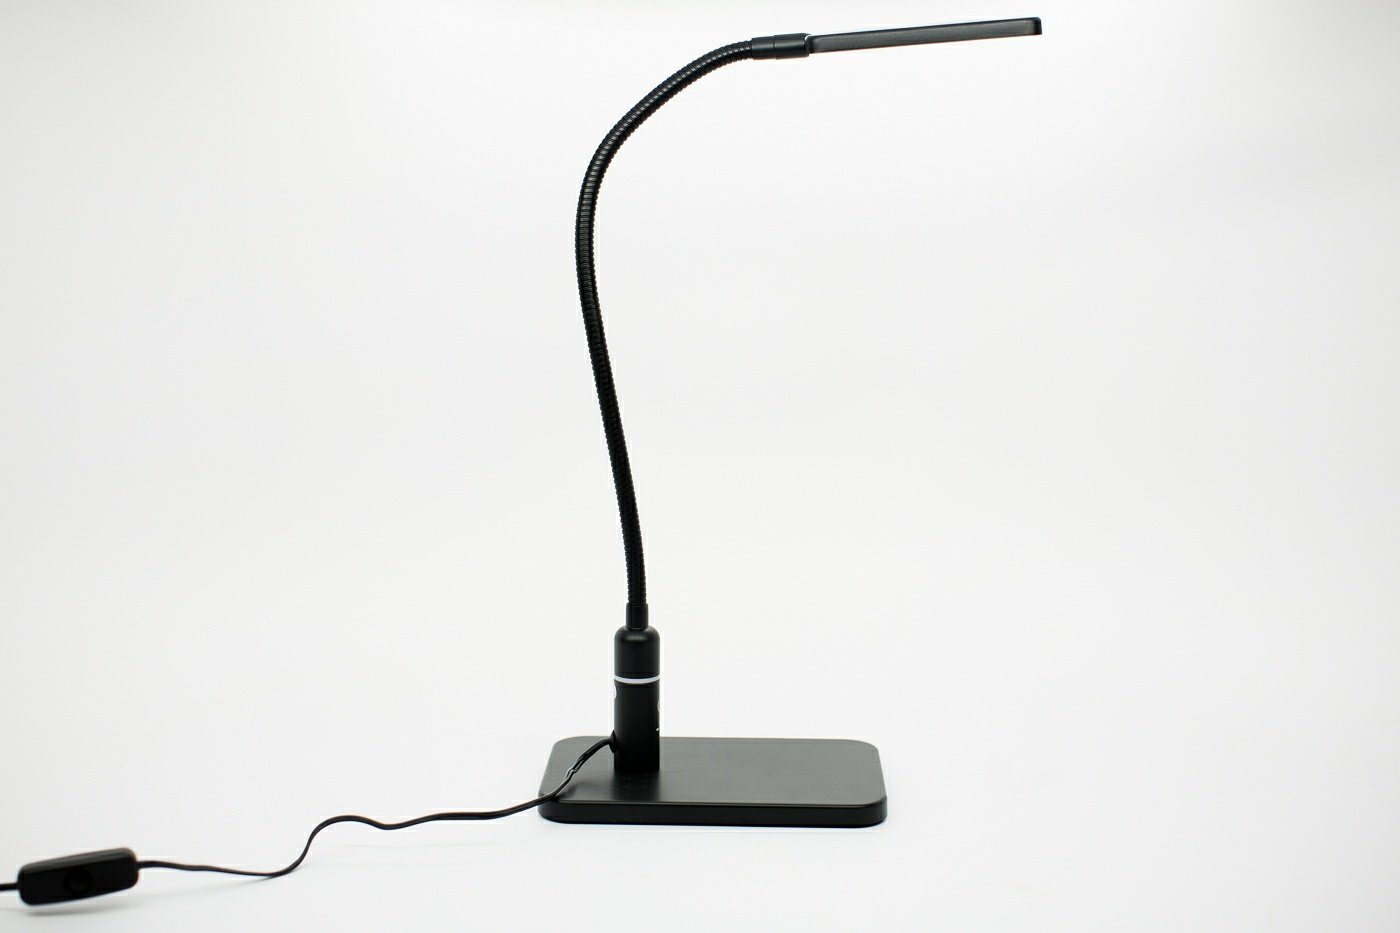 mystudio-gnled-5000k-daylight-spot-led-with-12-flexible-goose-neck